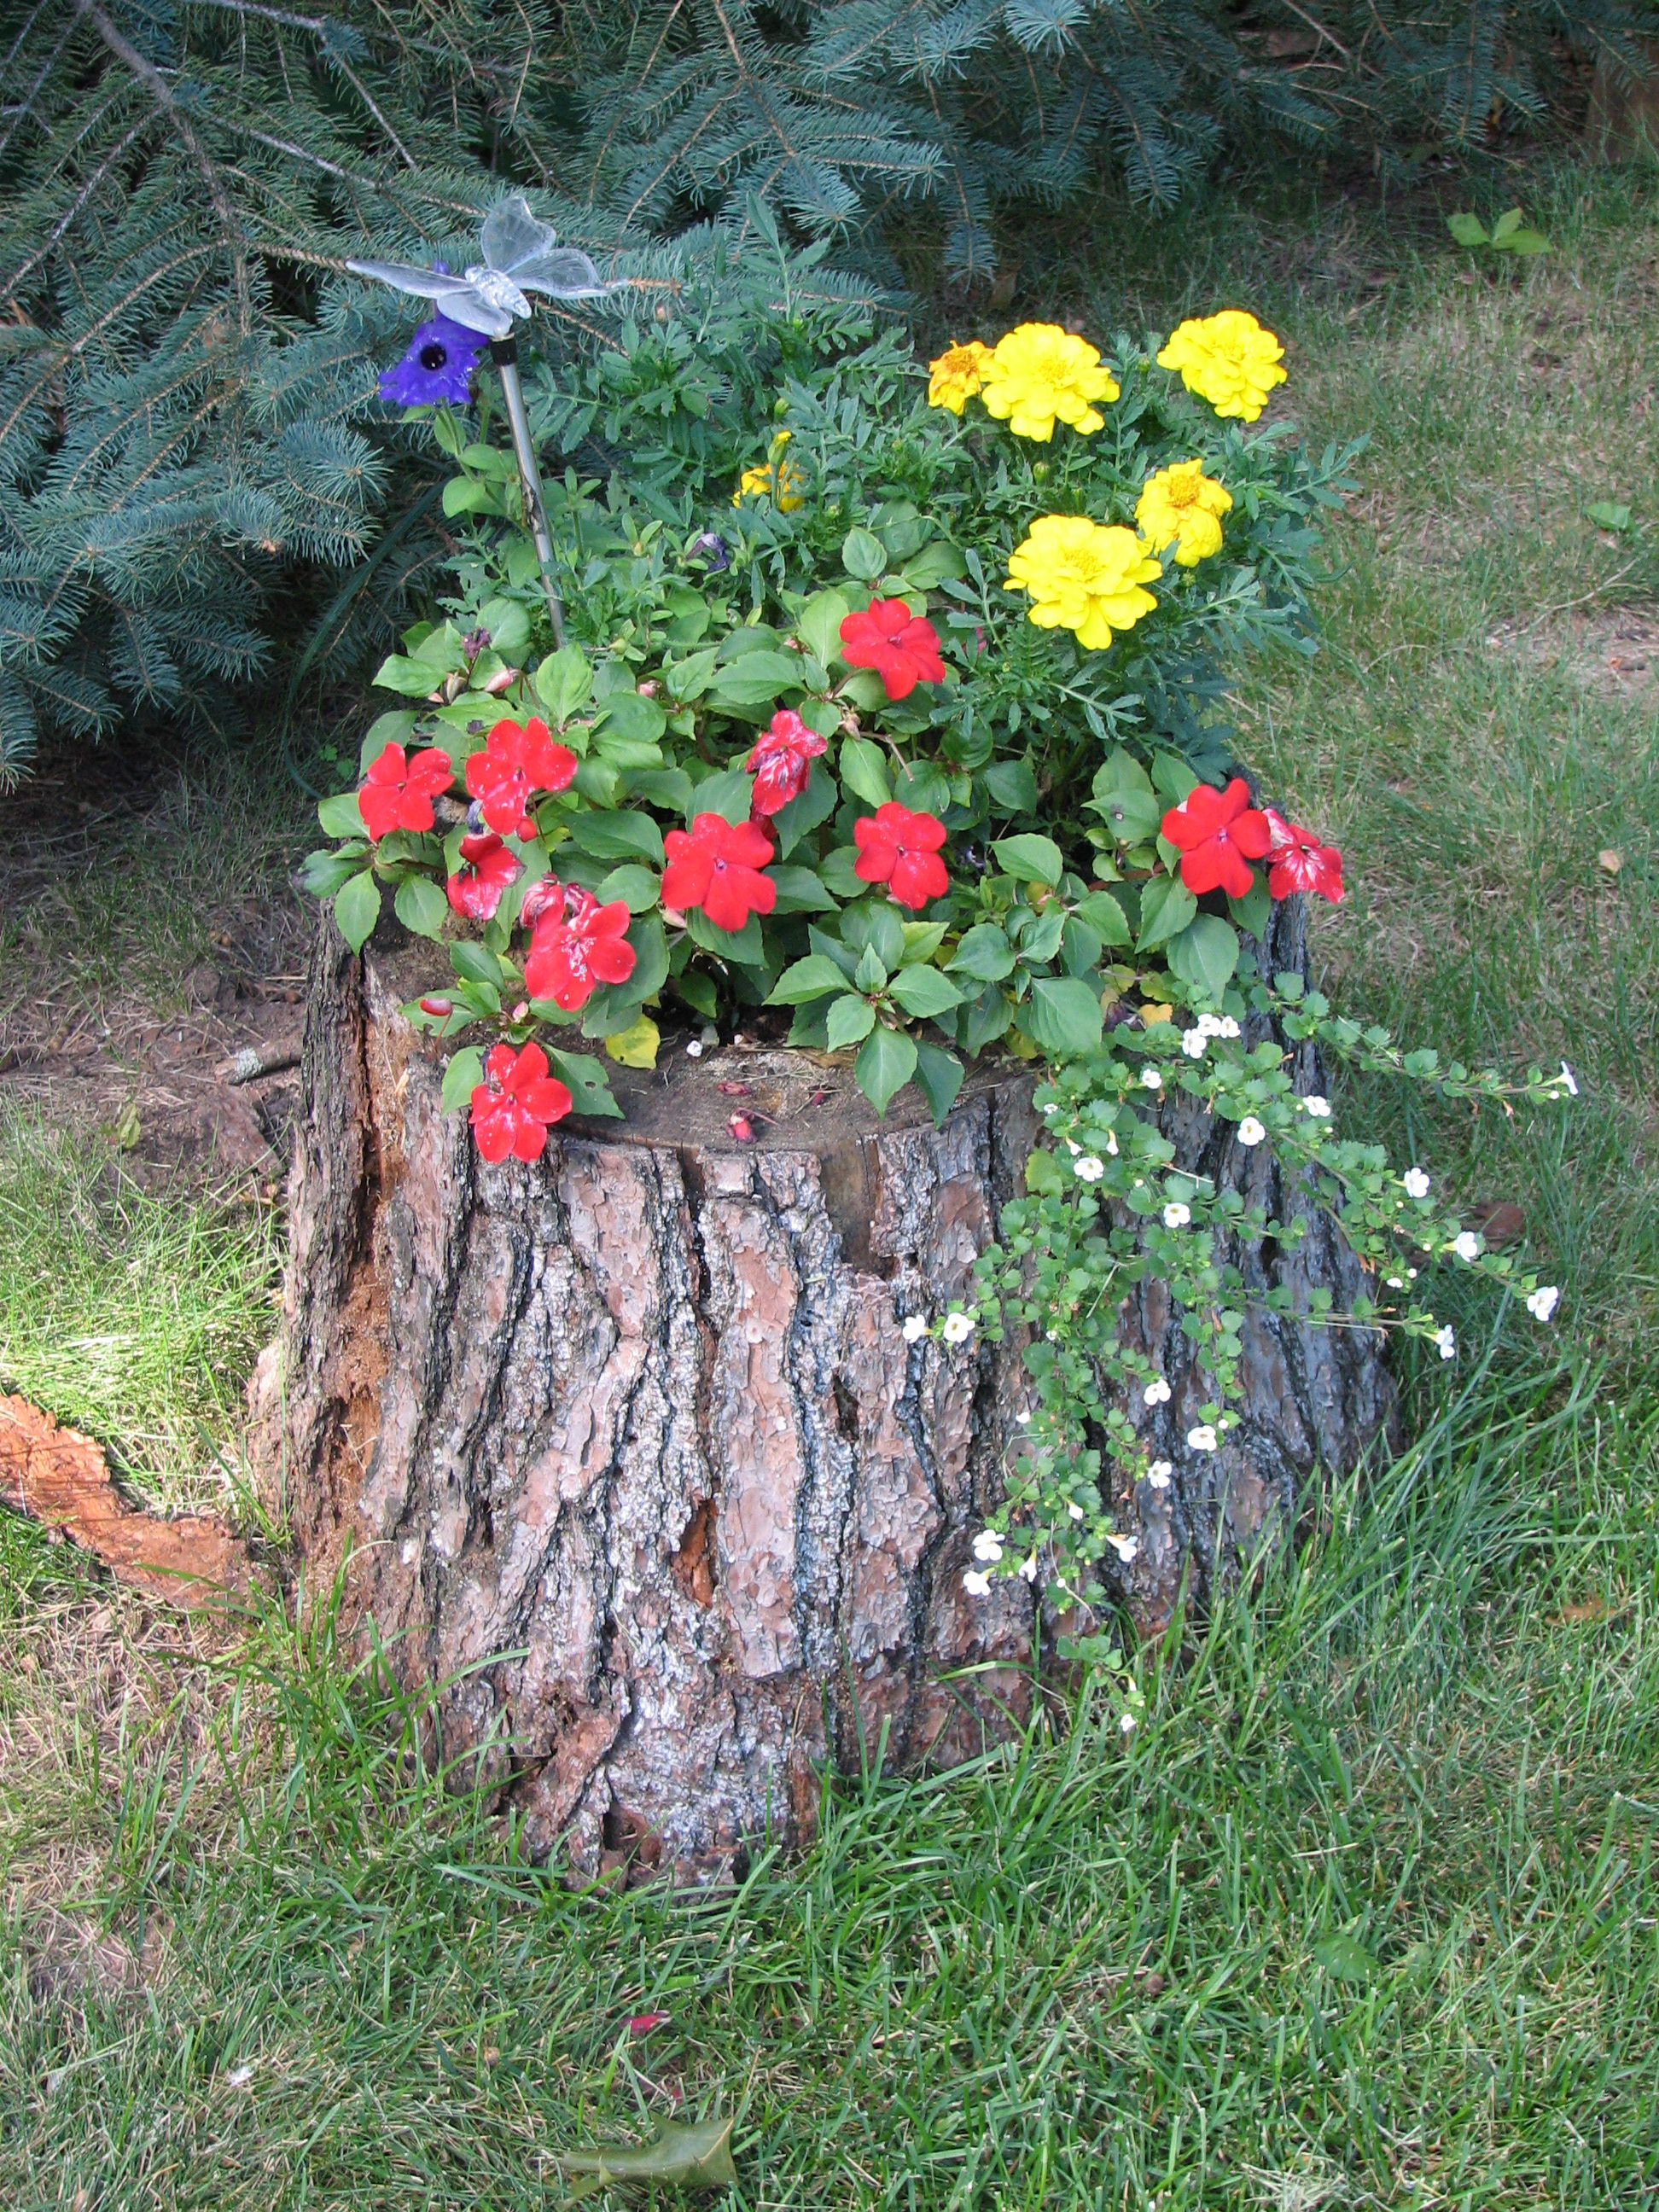 Tree stump flower pot my sister in law 39 s gardening pinterest tree stump flower and gardens - Flowers that grow on tree trunks ...